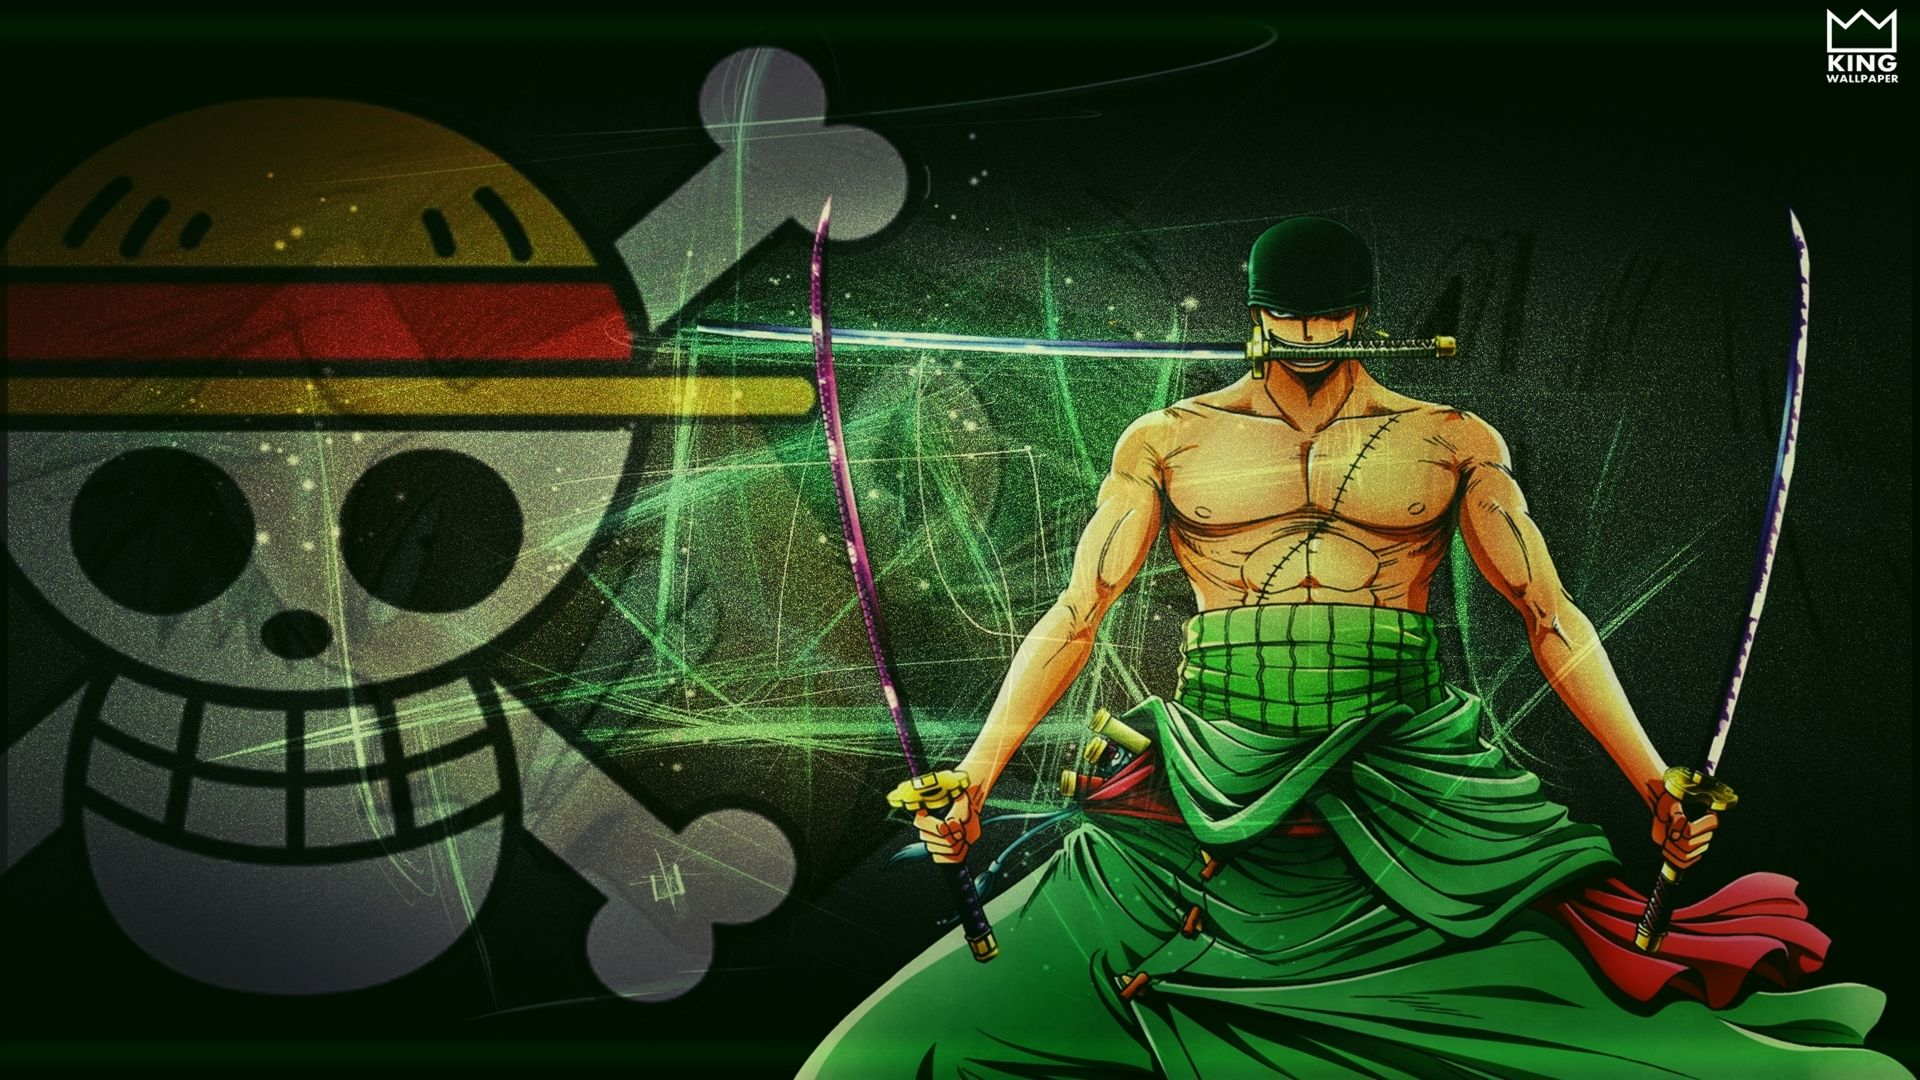 Zorro Wallpaper One Piece By Kingwallpaper Zoro One Piece One Piece Wallpaper Iphone Roronoa Zoro